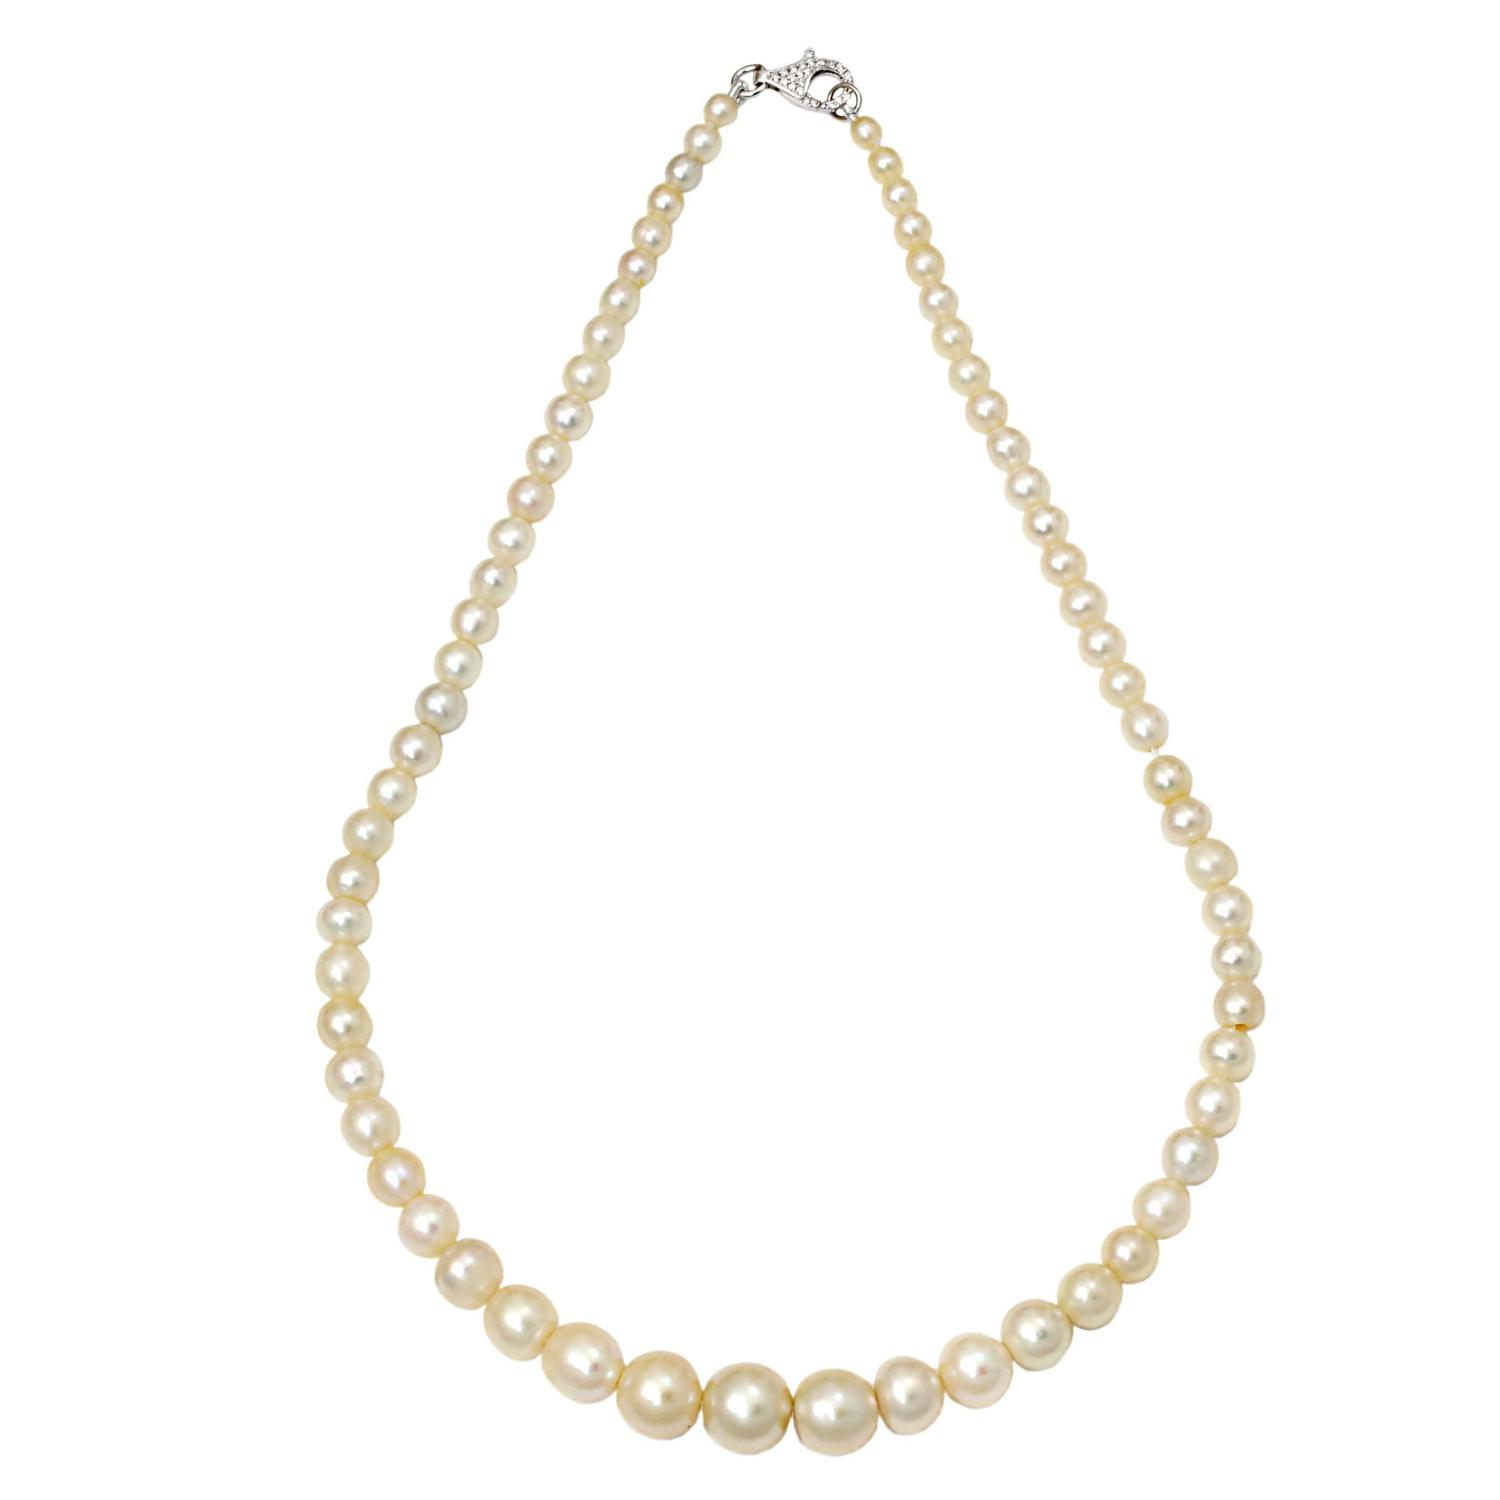 Natural Saltwater Pearl Necklace For Sale At 1stdibs